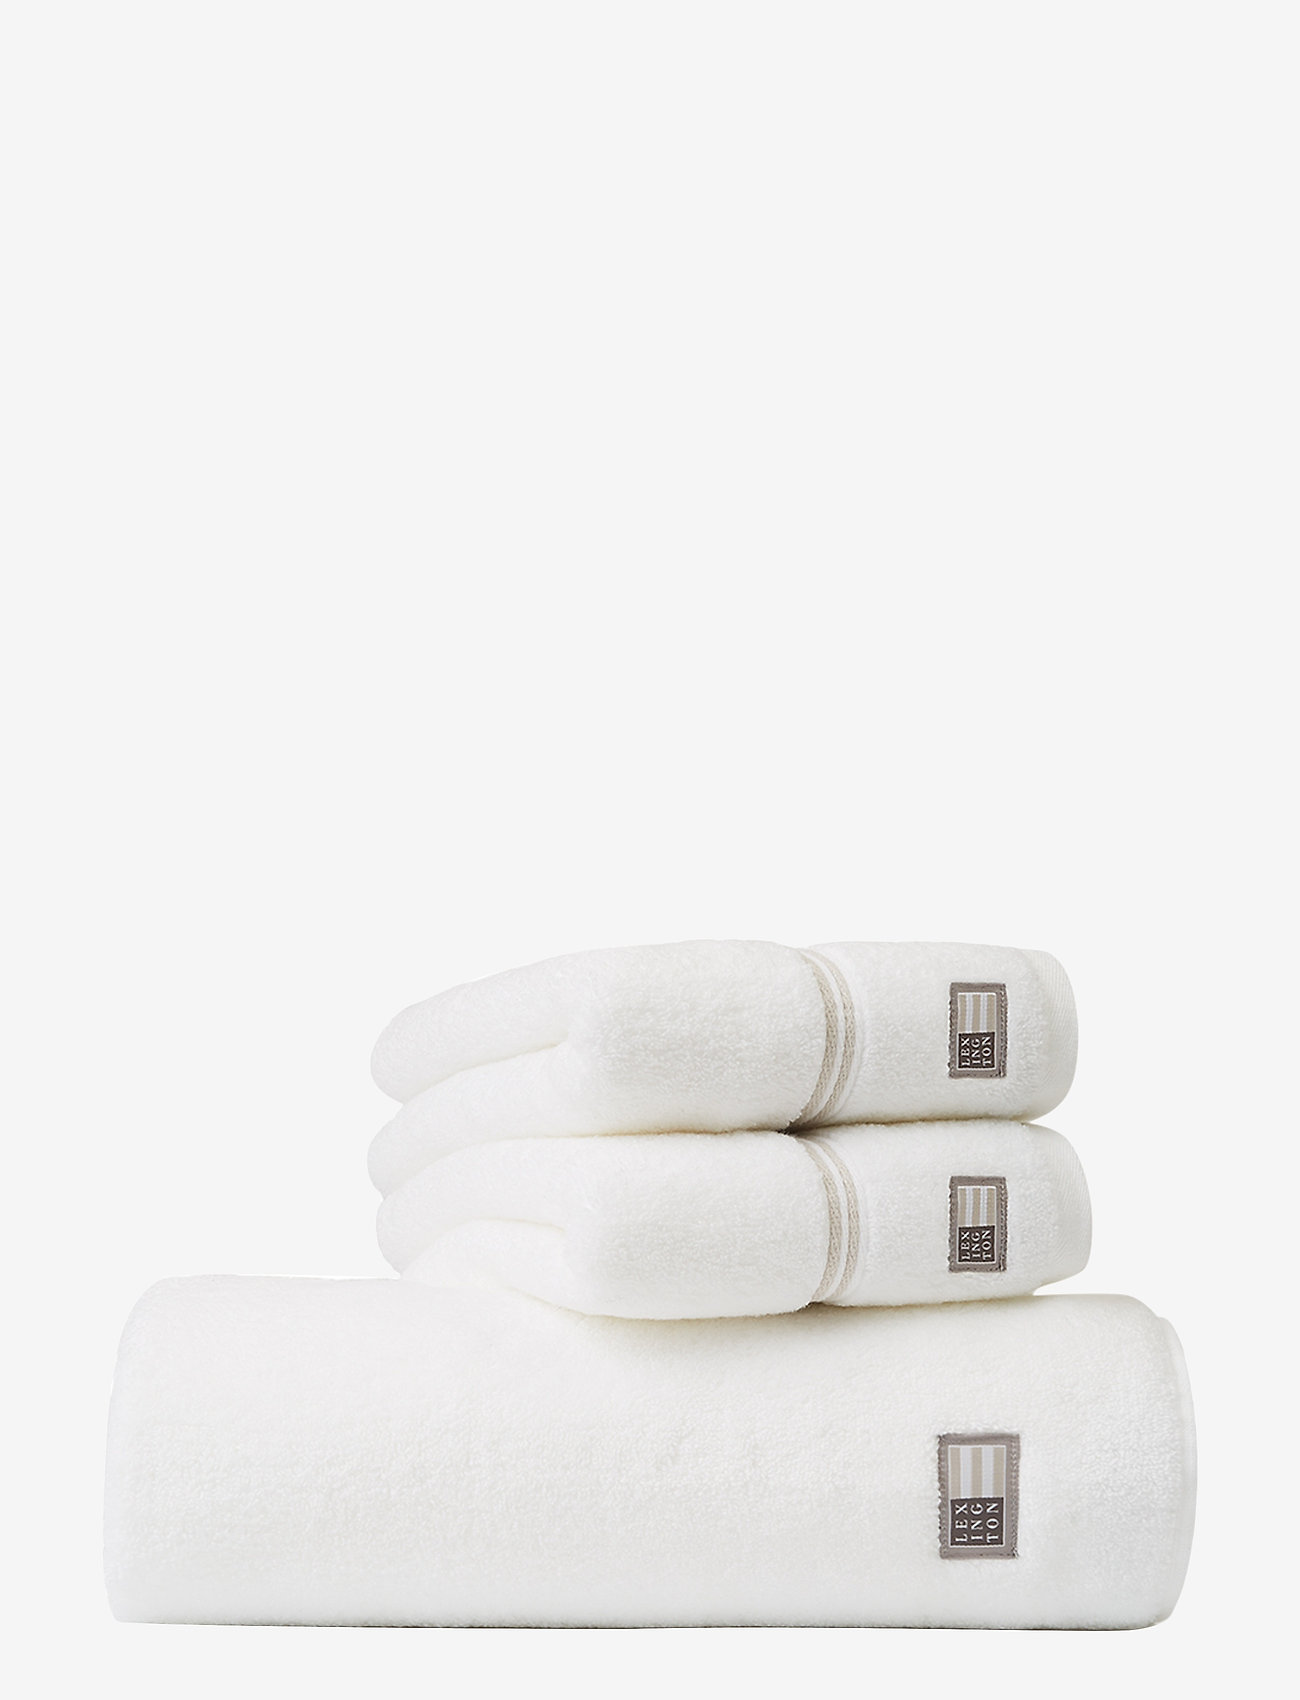 Lexington Home - Lexington Hotel Towel White/Beige - pyyhkeet & kylpypyyhkeet - white/beige - 0